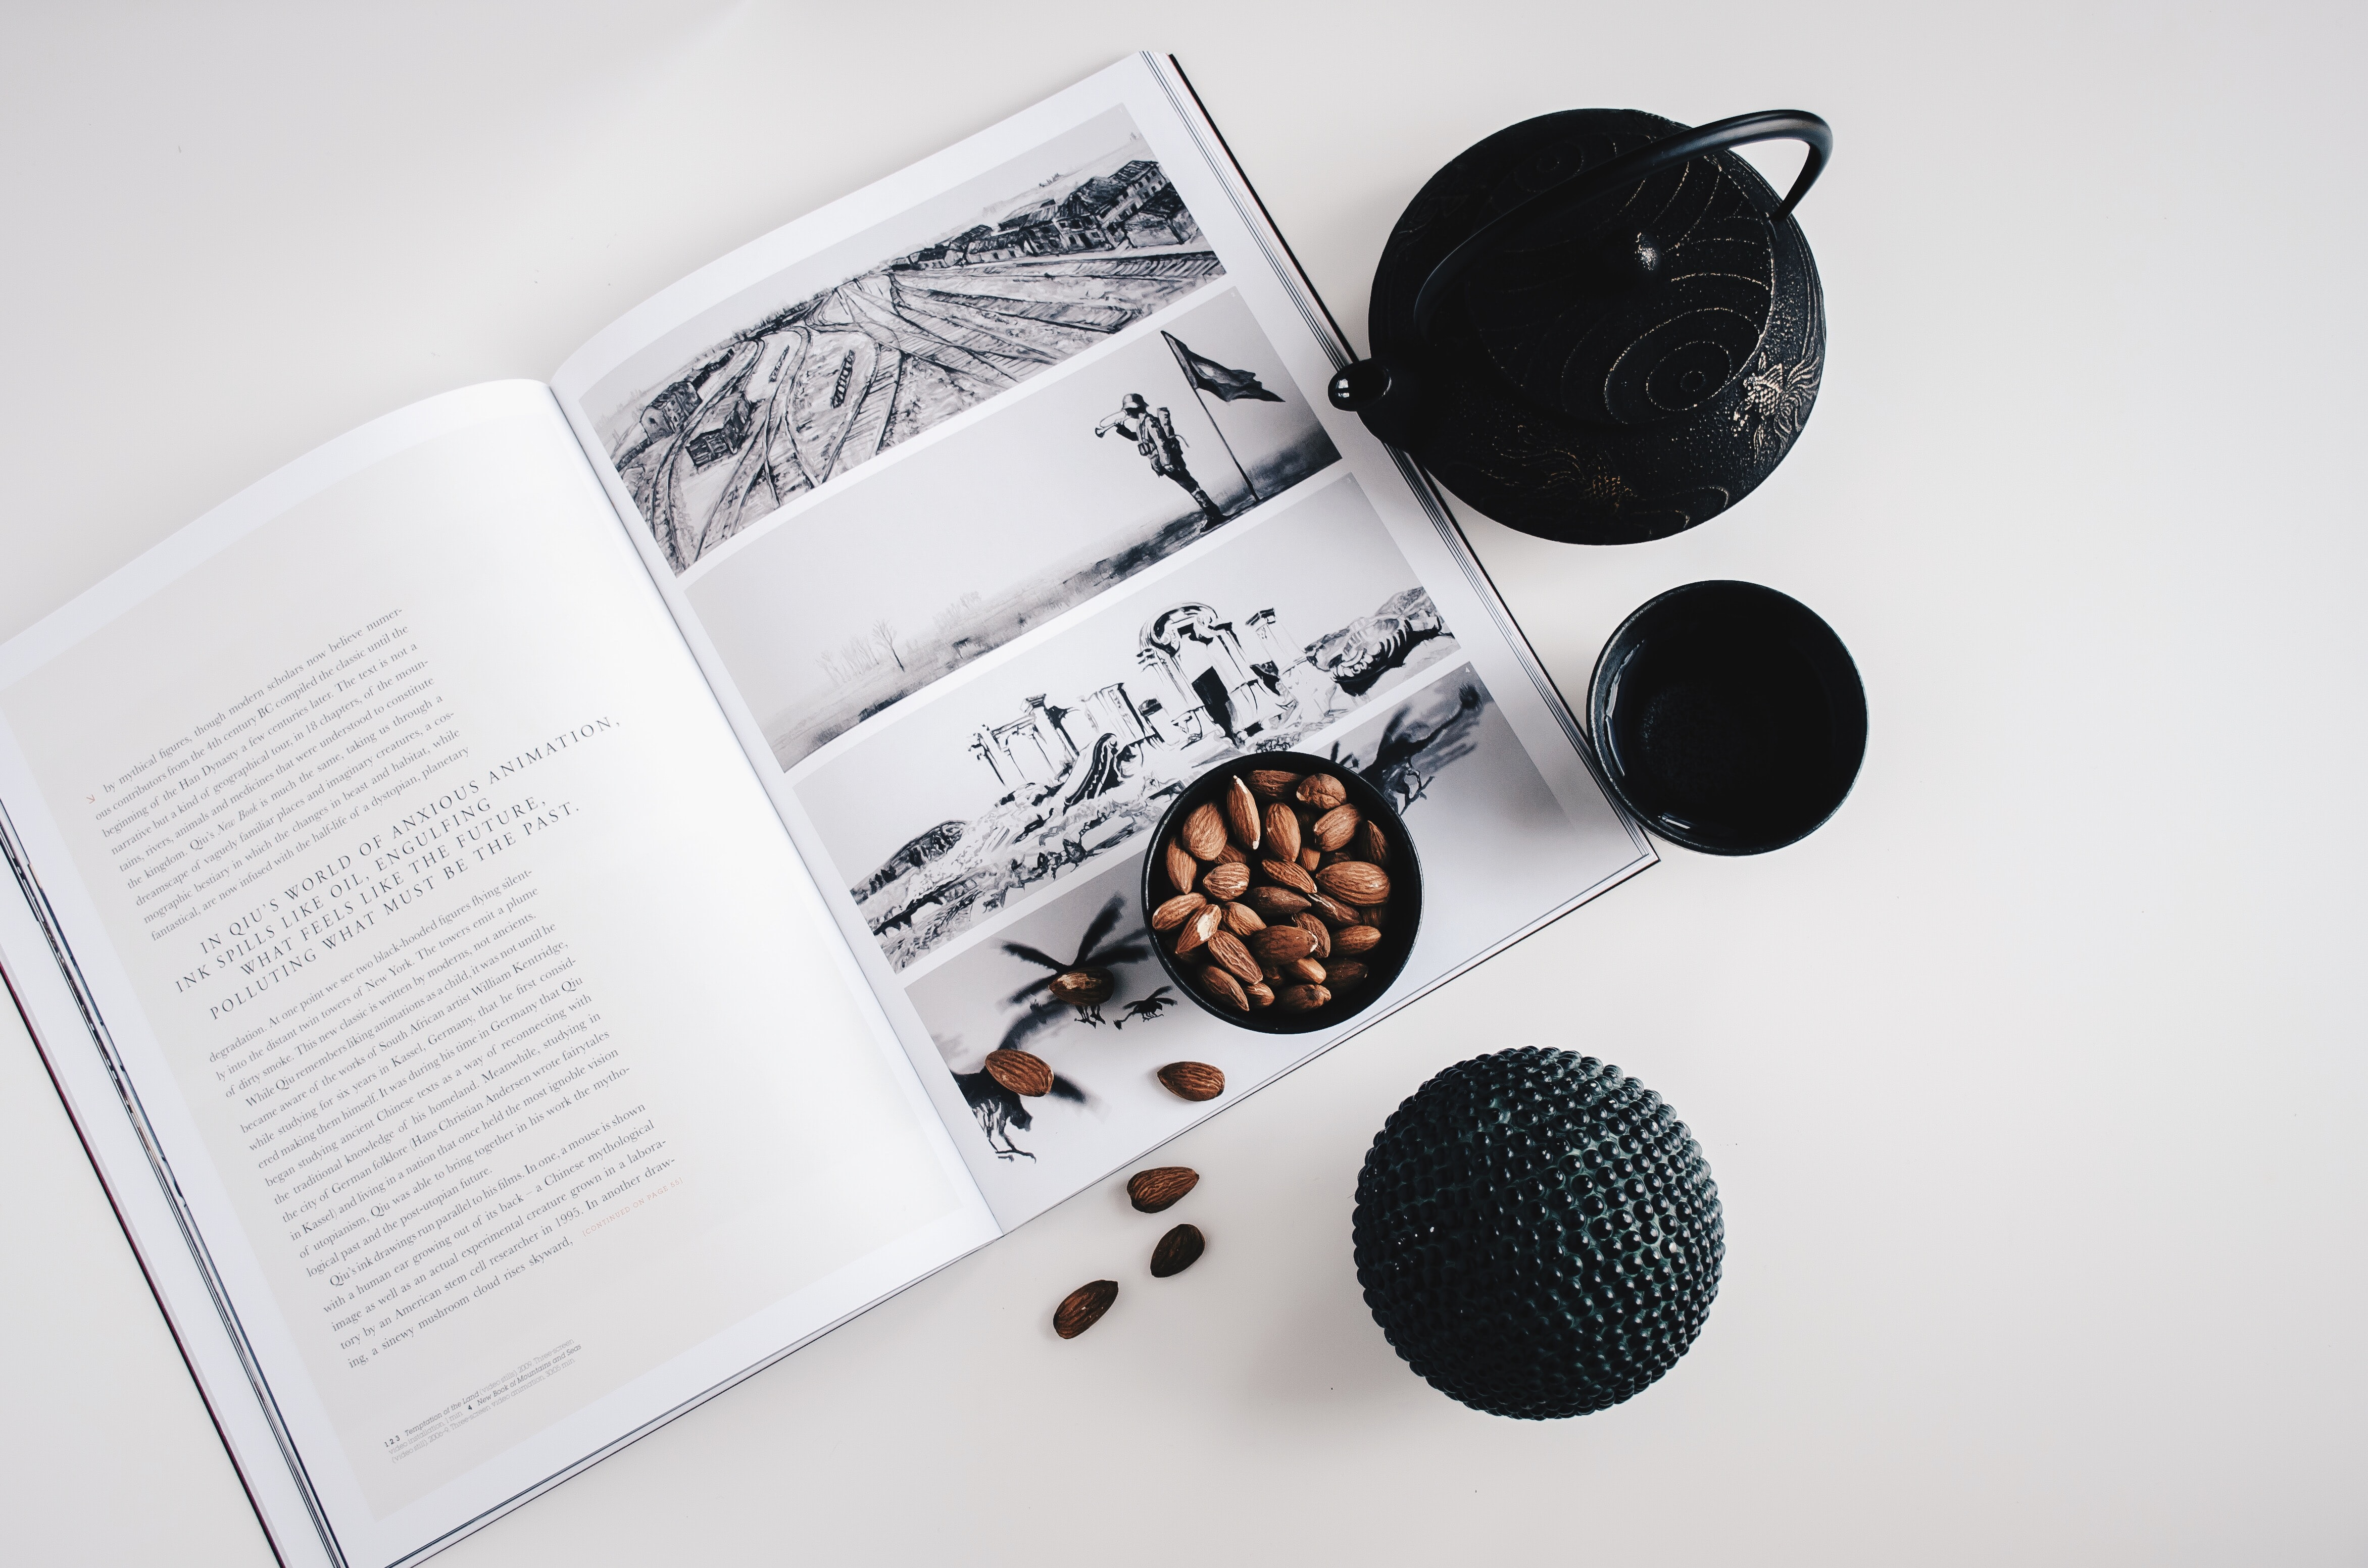 An overhead shot of a bowl of almonds on a book